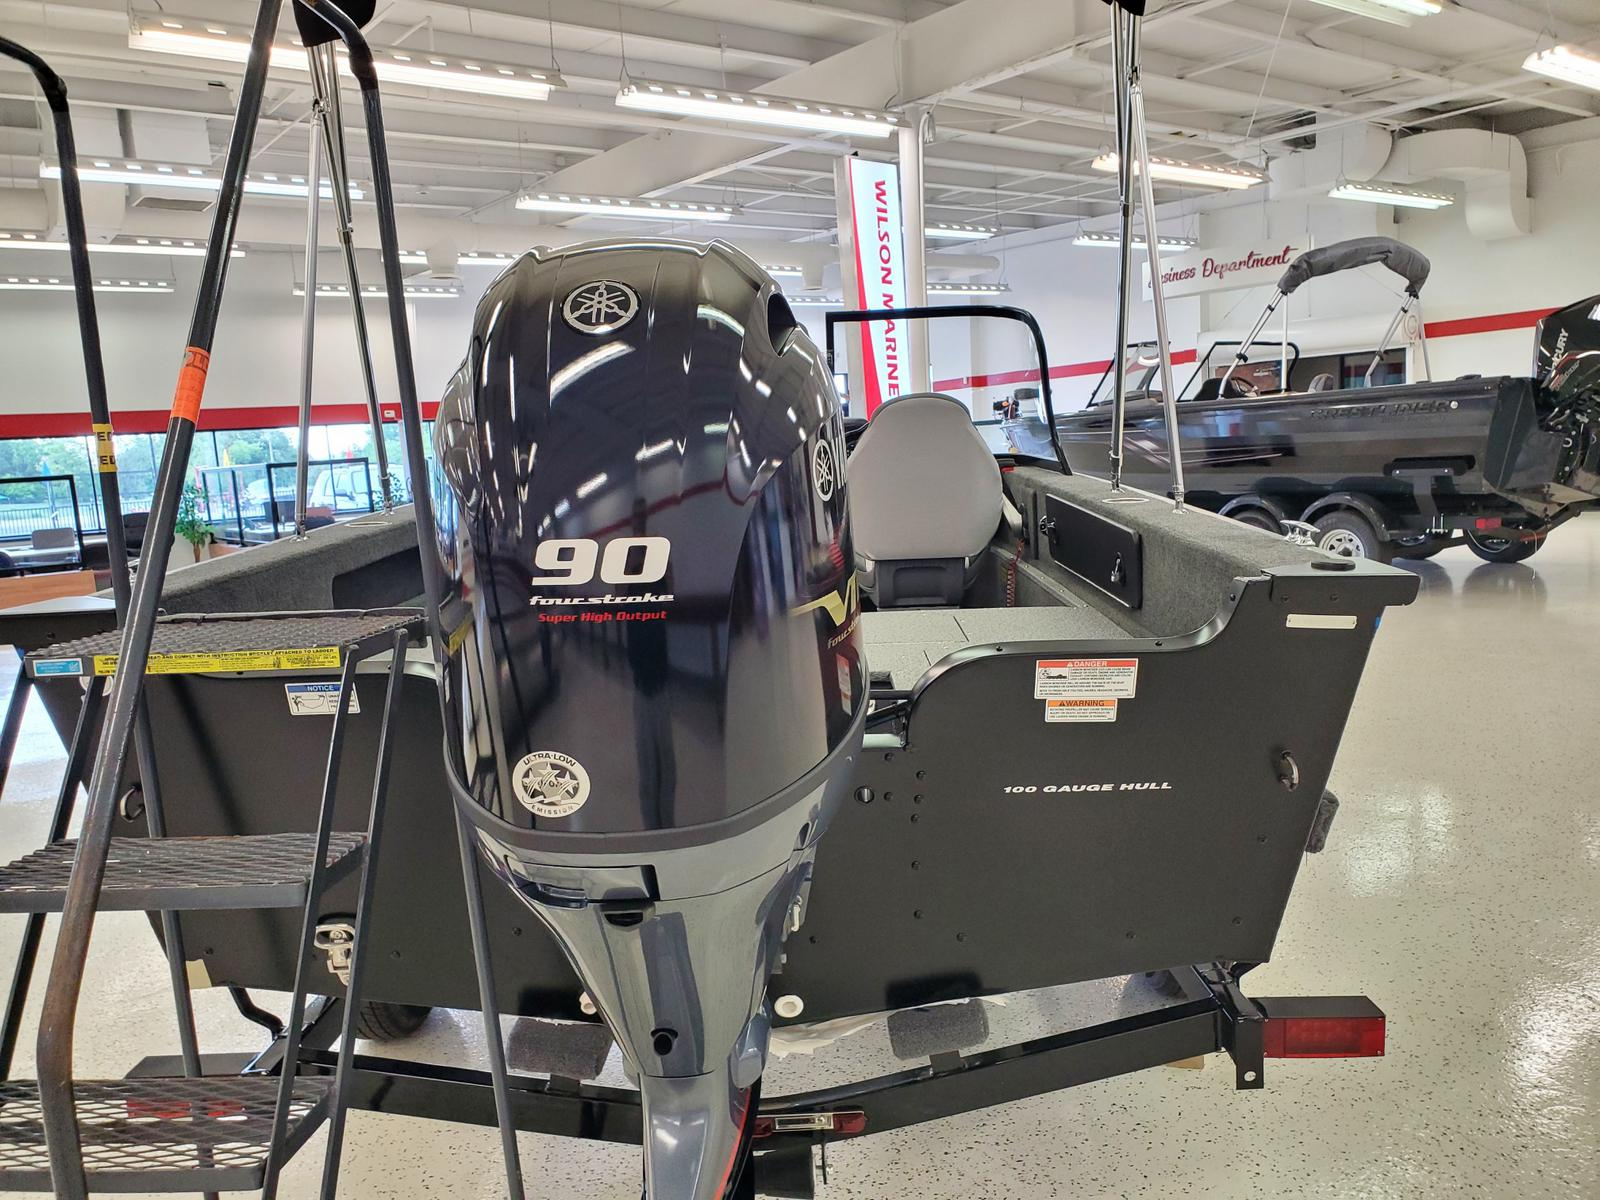 2021 Starweld boat for sale, model of the boat is Fusion Pro 16 DC Pro & Image # 2 of 2